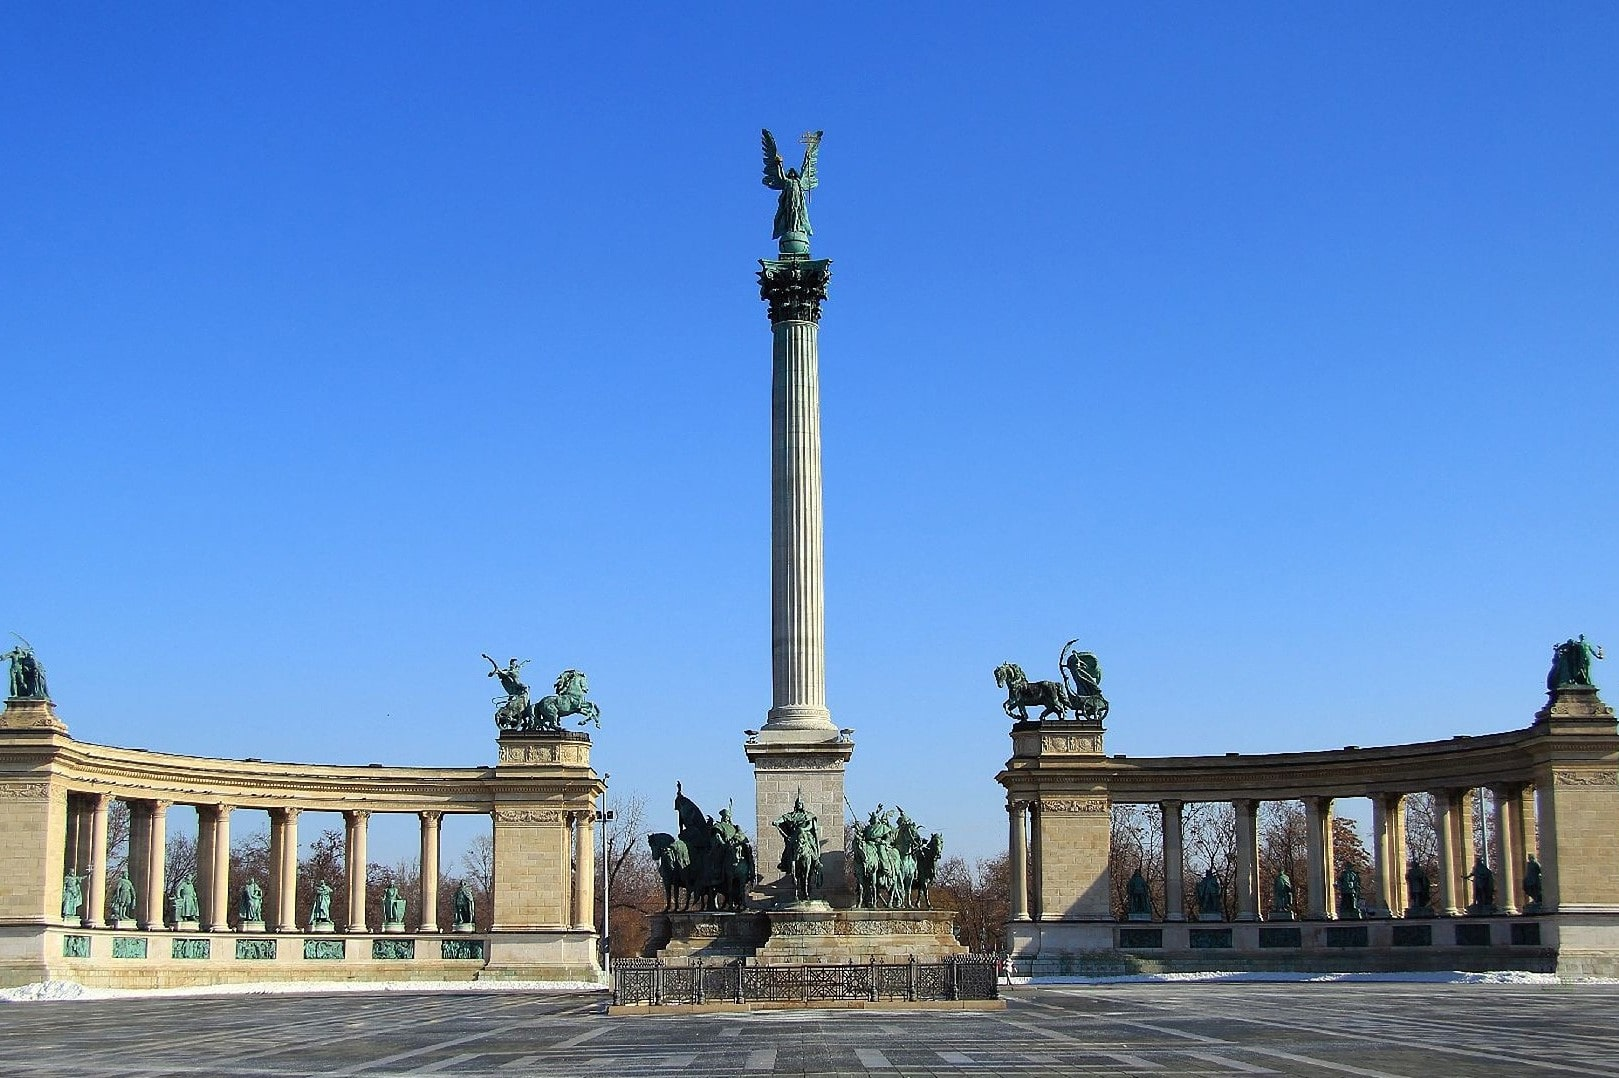 famous-european-monument-on-a-sunny-day-budapest-heroes-square